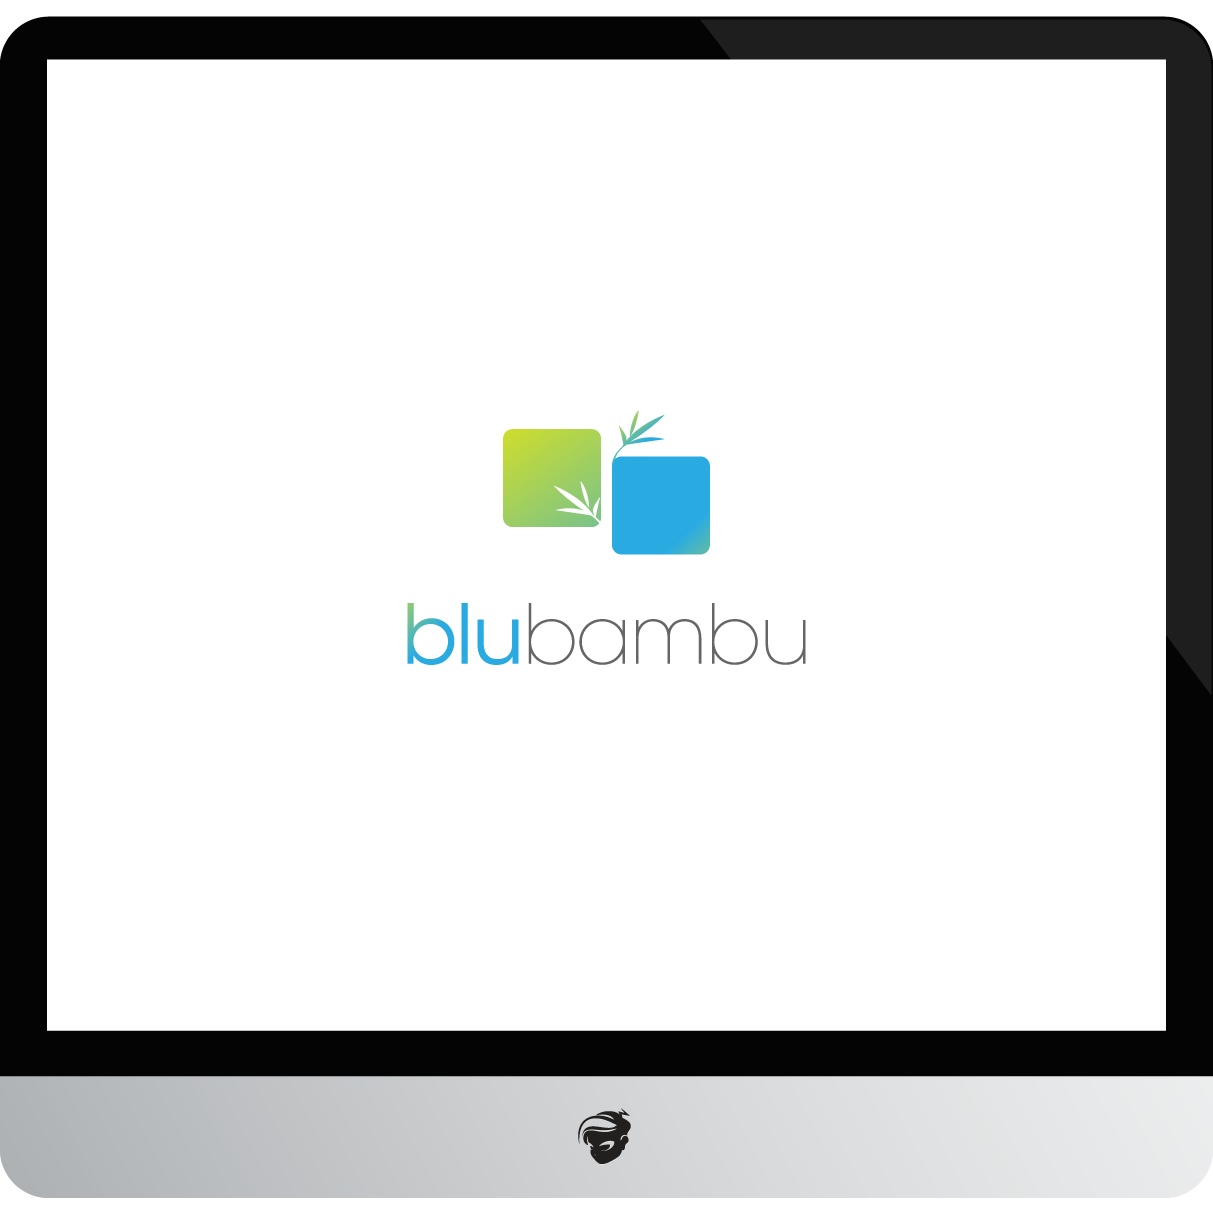 Logo Design by zesthar - Entry No. 108 in the Logo Design Contest New Logo Design for blubambu.